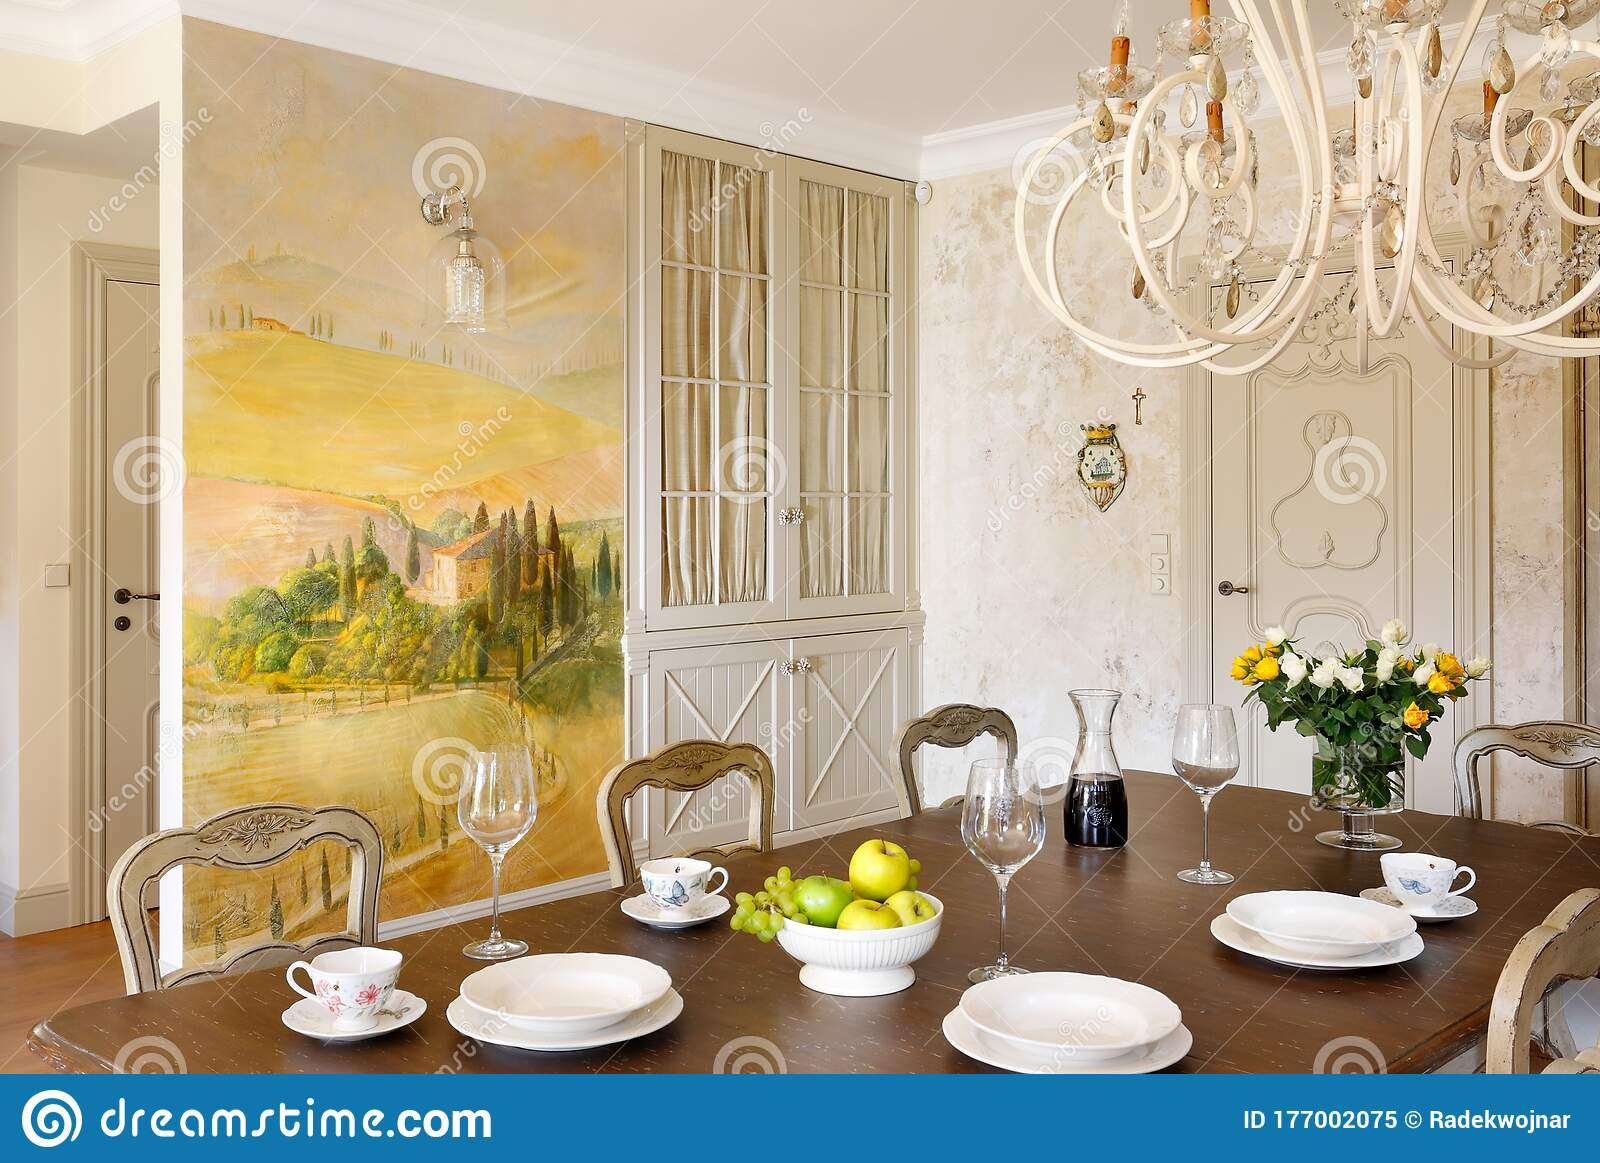 Classic Style Dining Room With Tuscany Wall Painting Stock Image Image Of Dining Tuscany 177002075